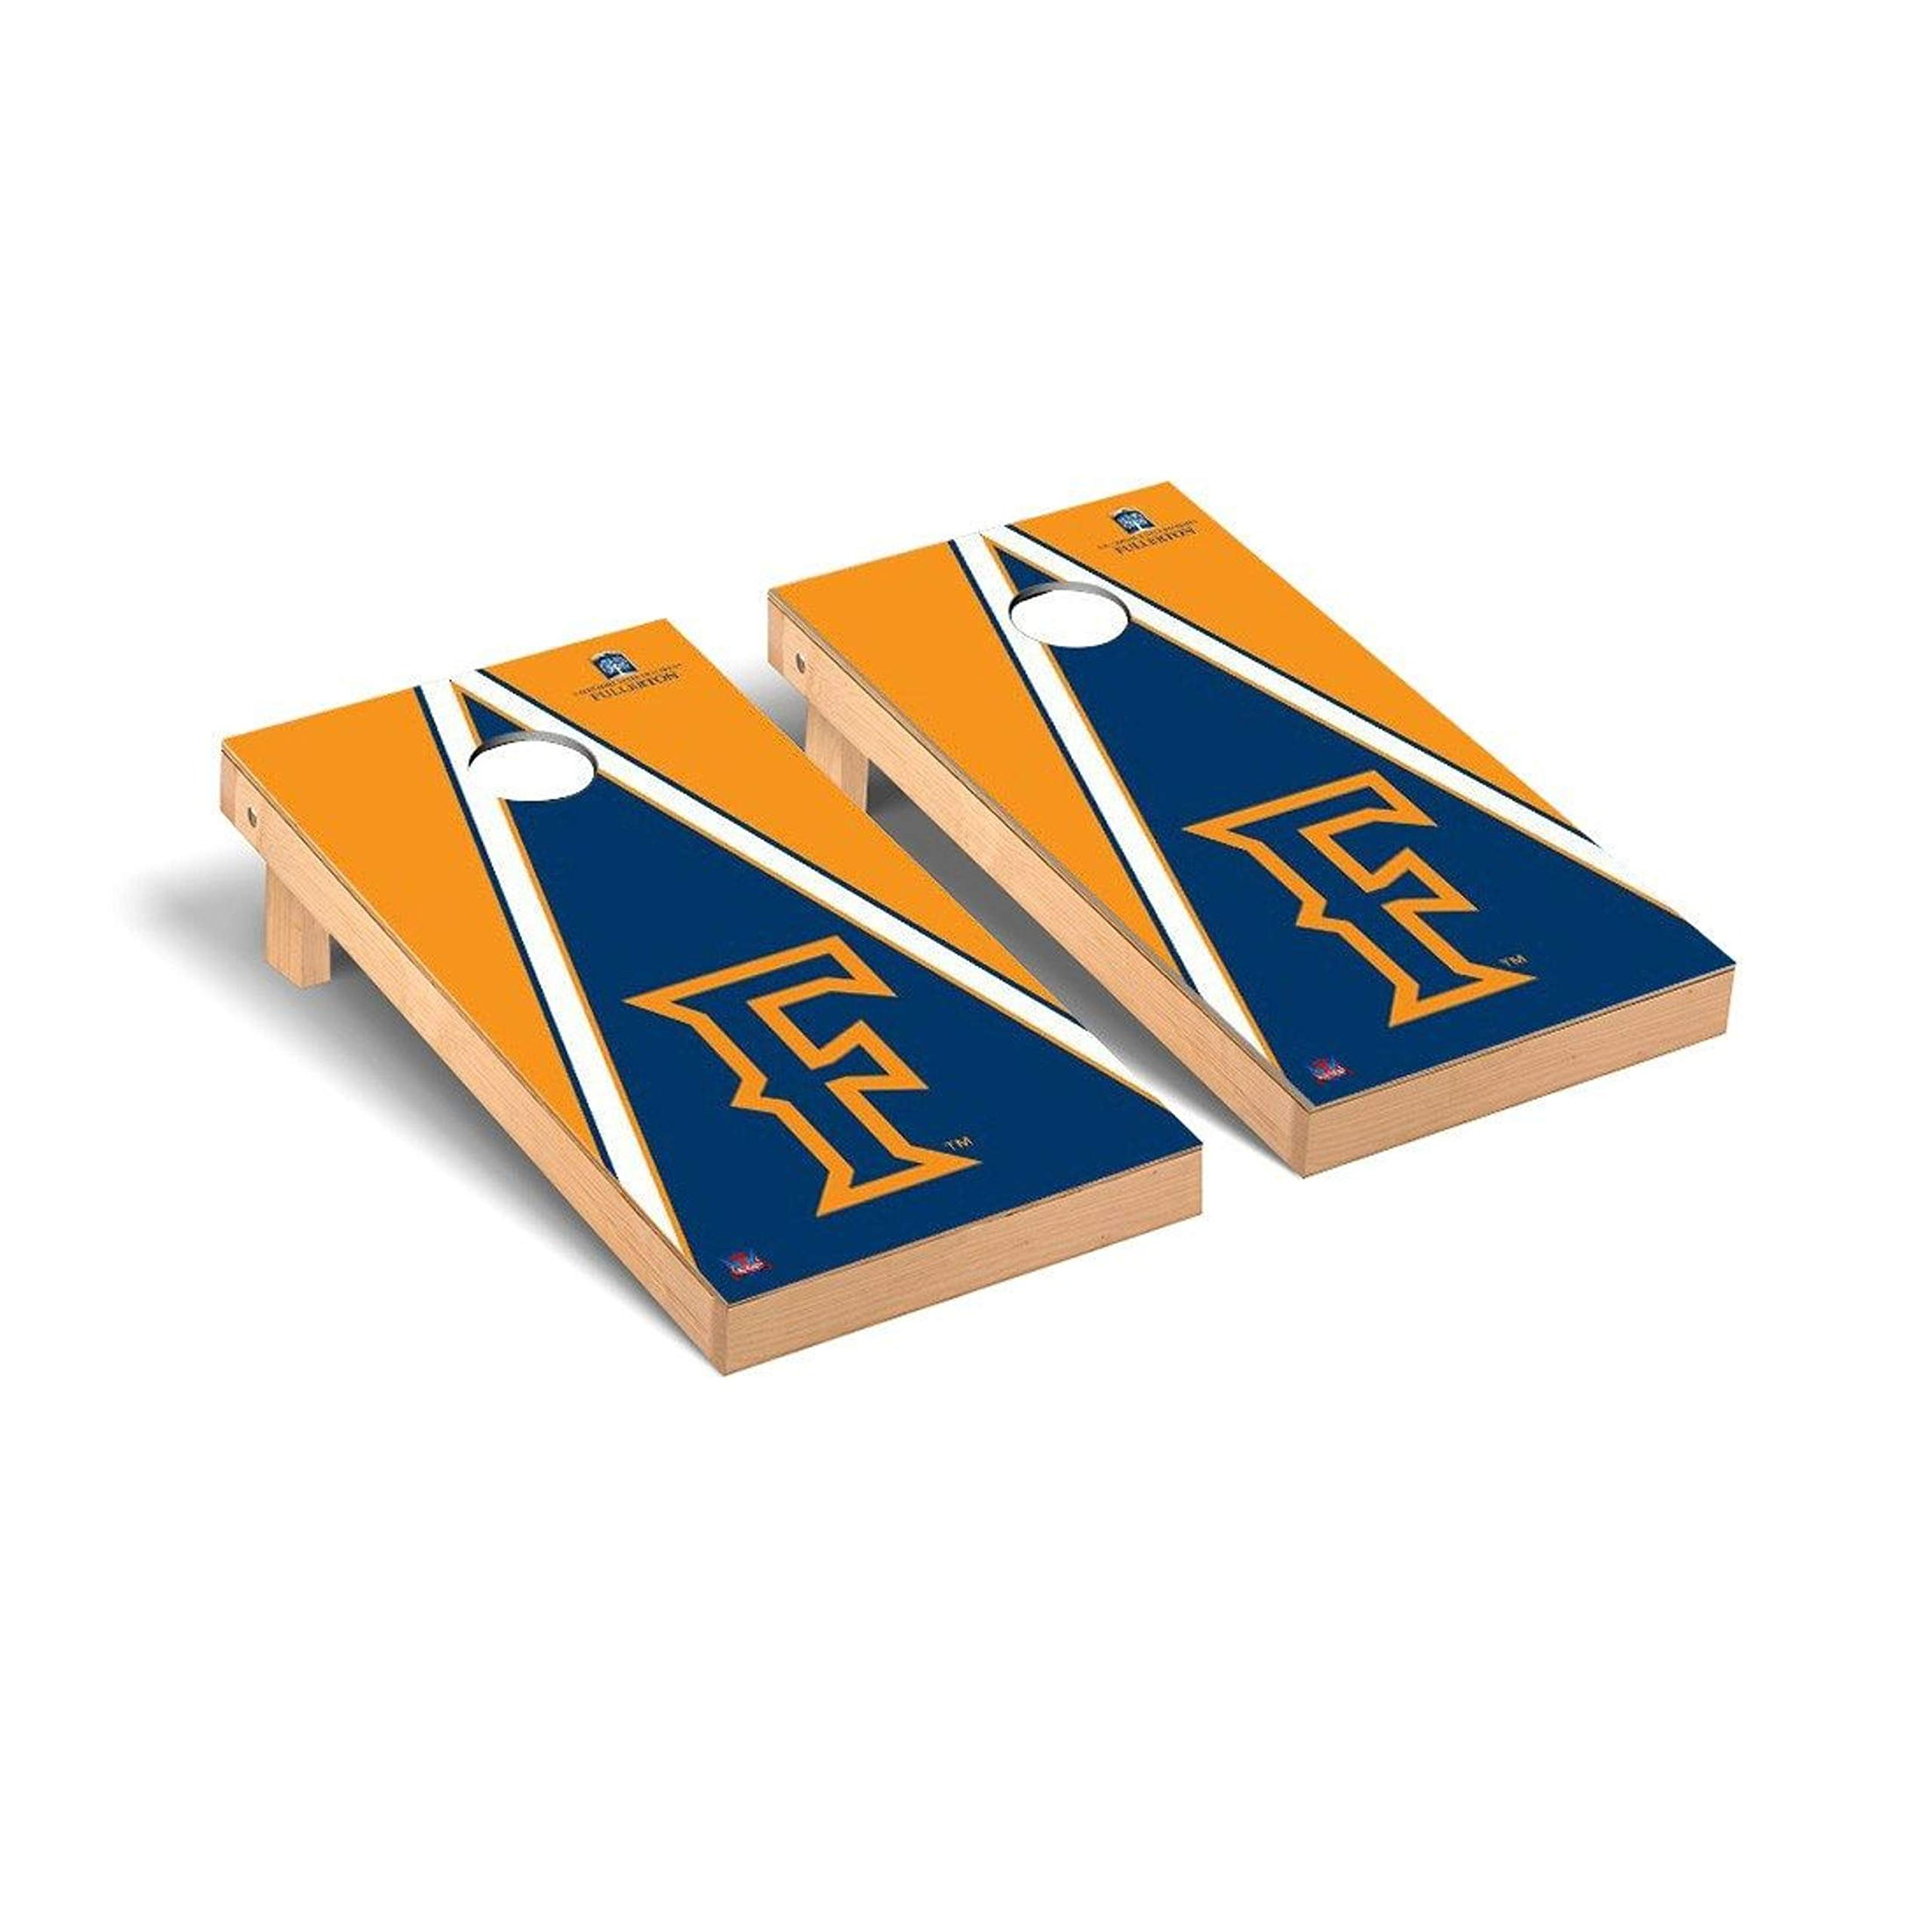 Victory Tailgate Regulation Collegiate NCAA Triangle Series Cornhole Board Set - 2 Boards, 8 Bags - Cal State Fullerton Titans by Victory Tailgate